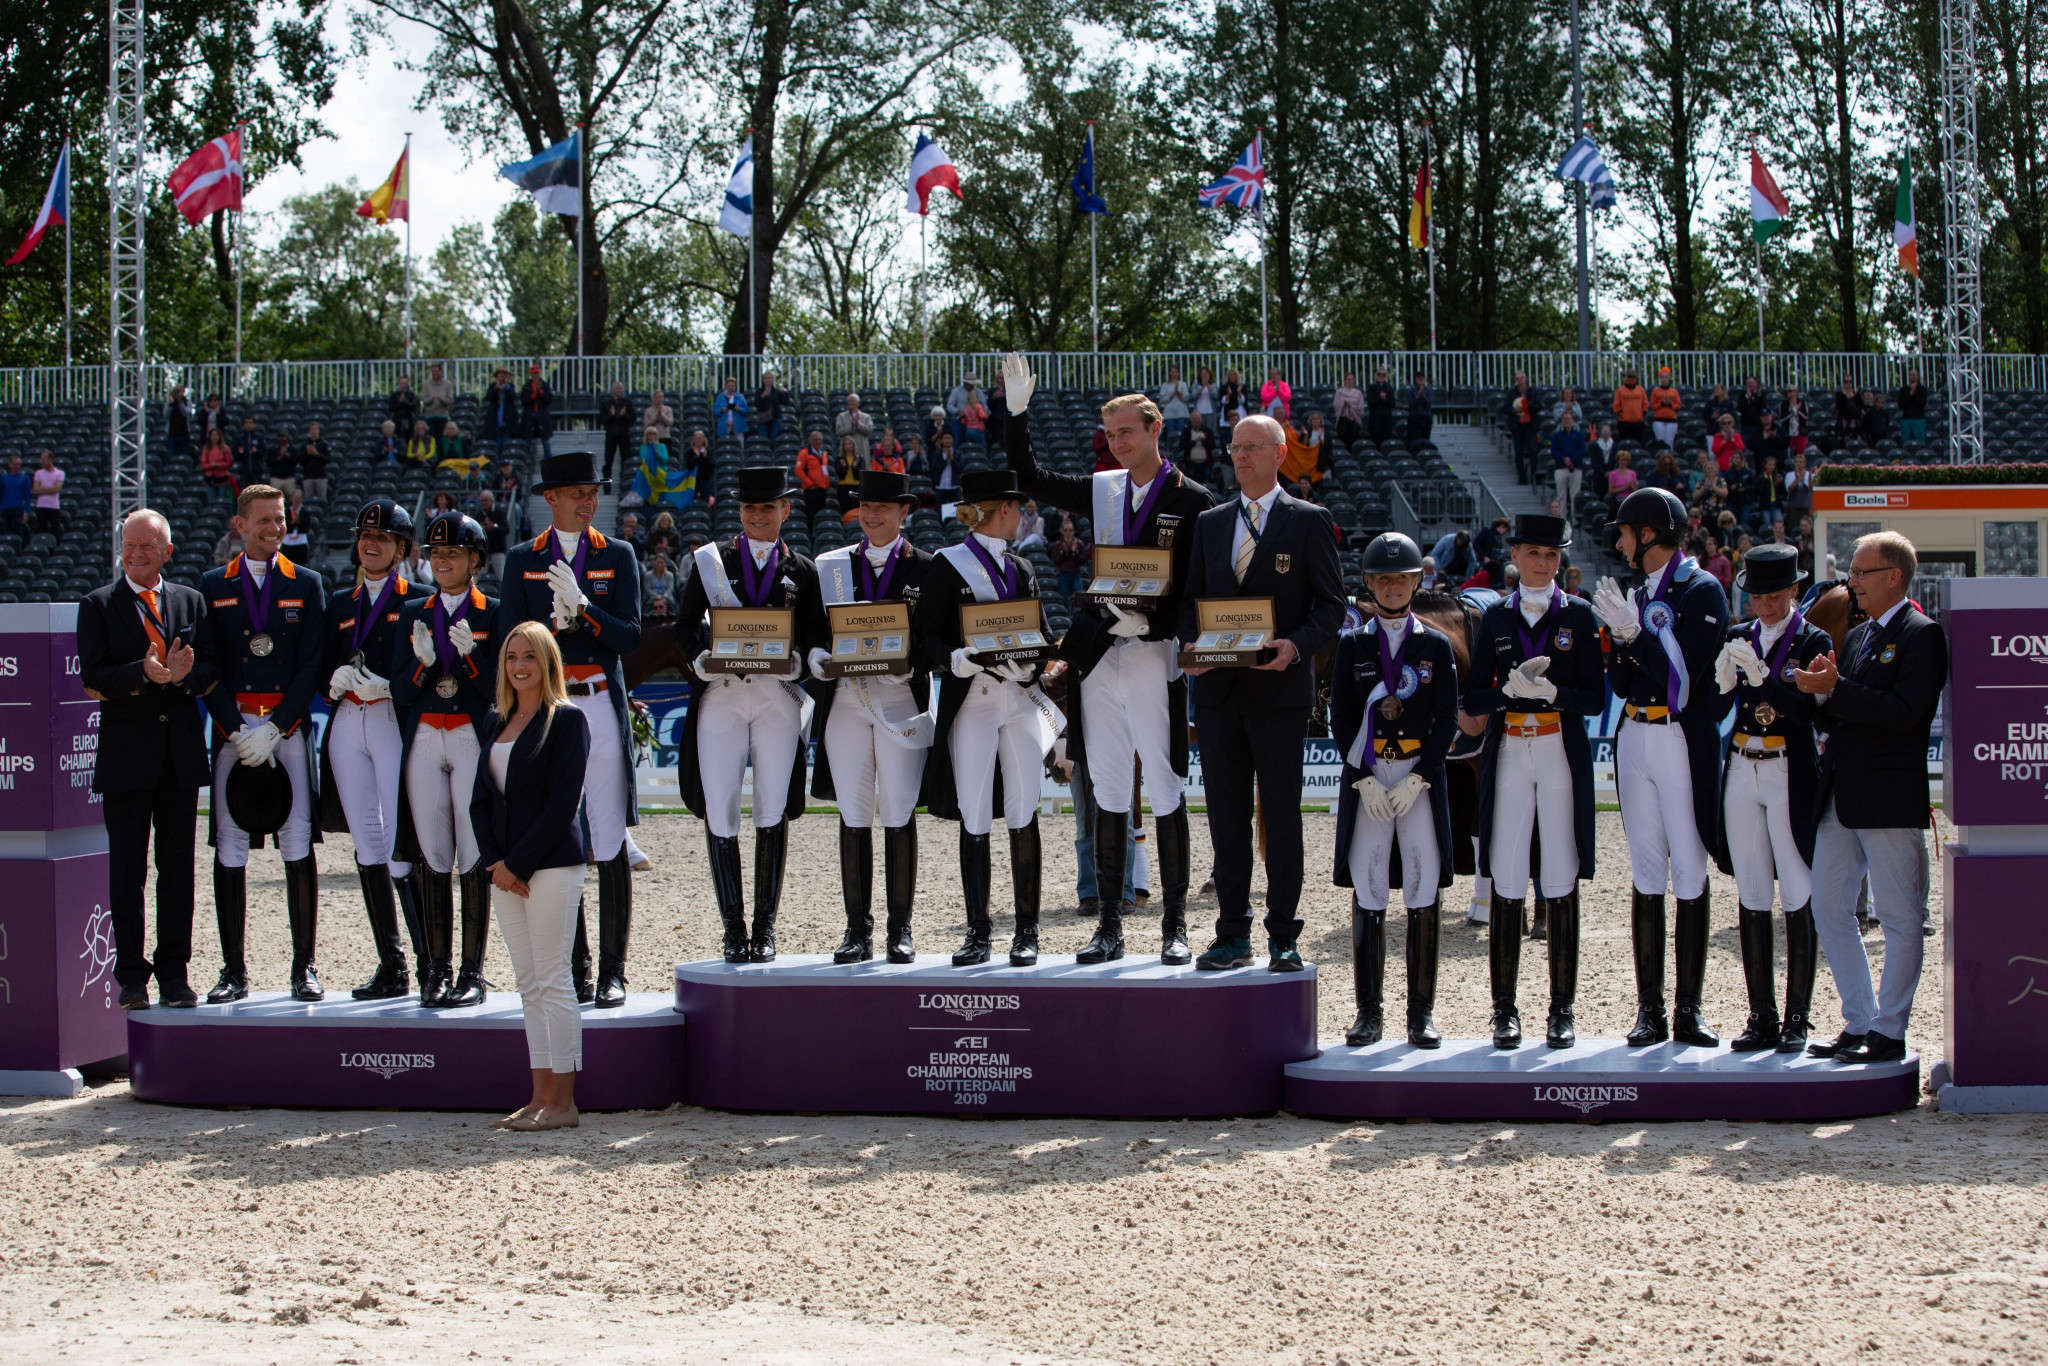 Germany clinch dressage gold at FEI European Championships